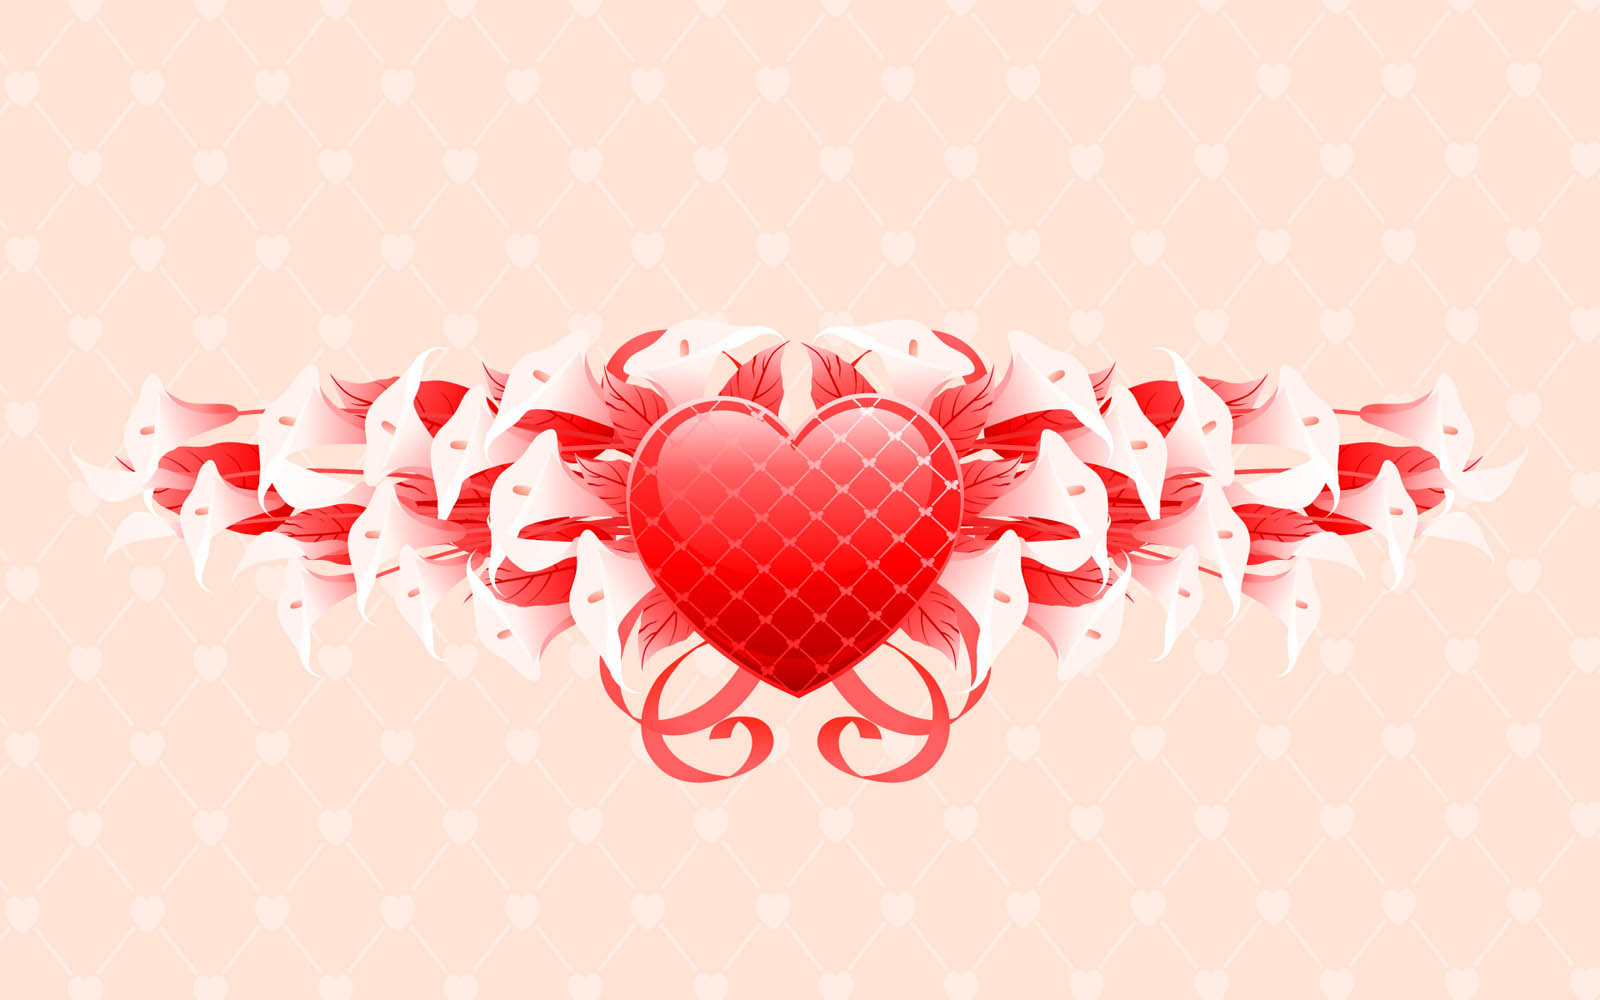 Love Wallpaper Vector : wallpapers: Vector Love Wallpapers